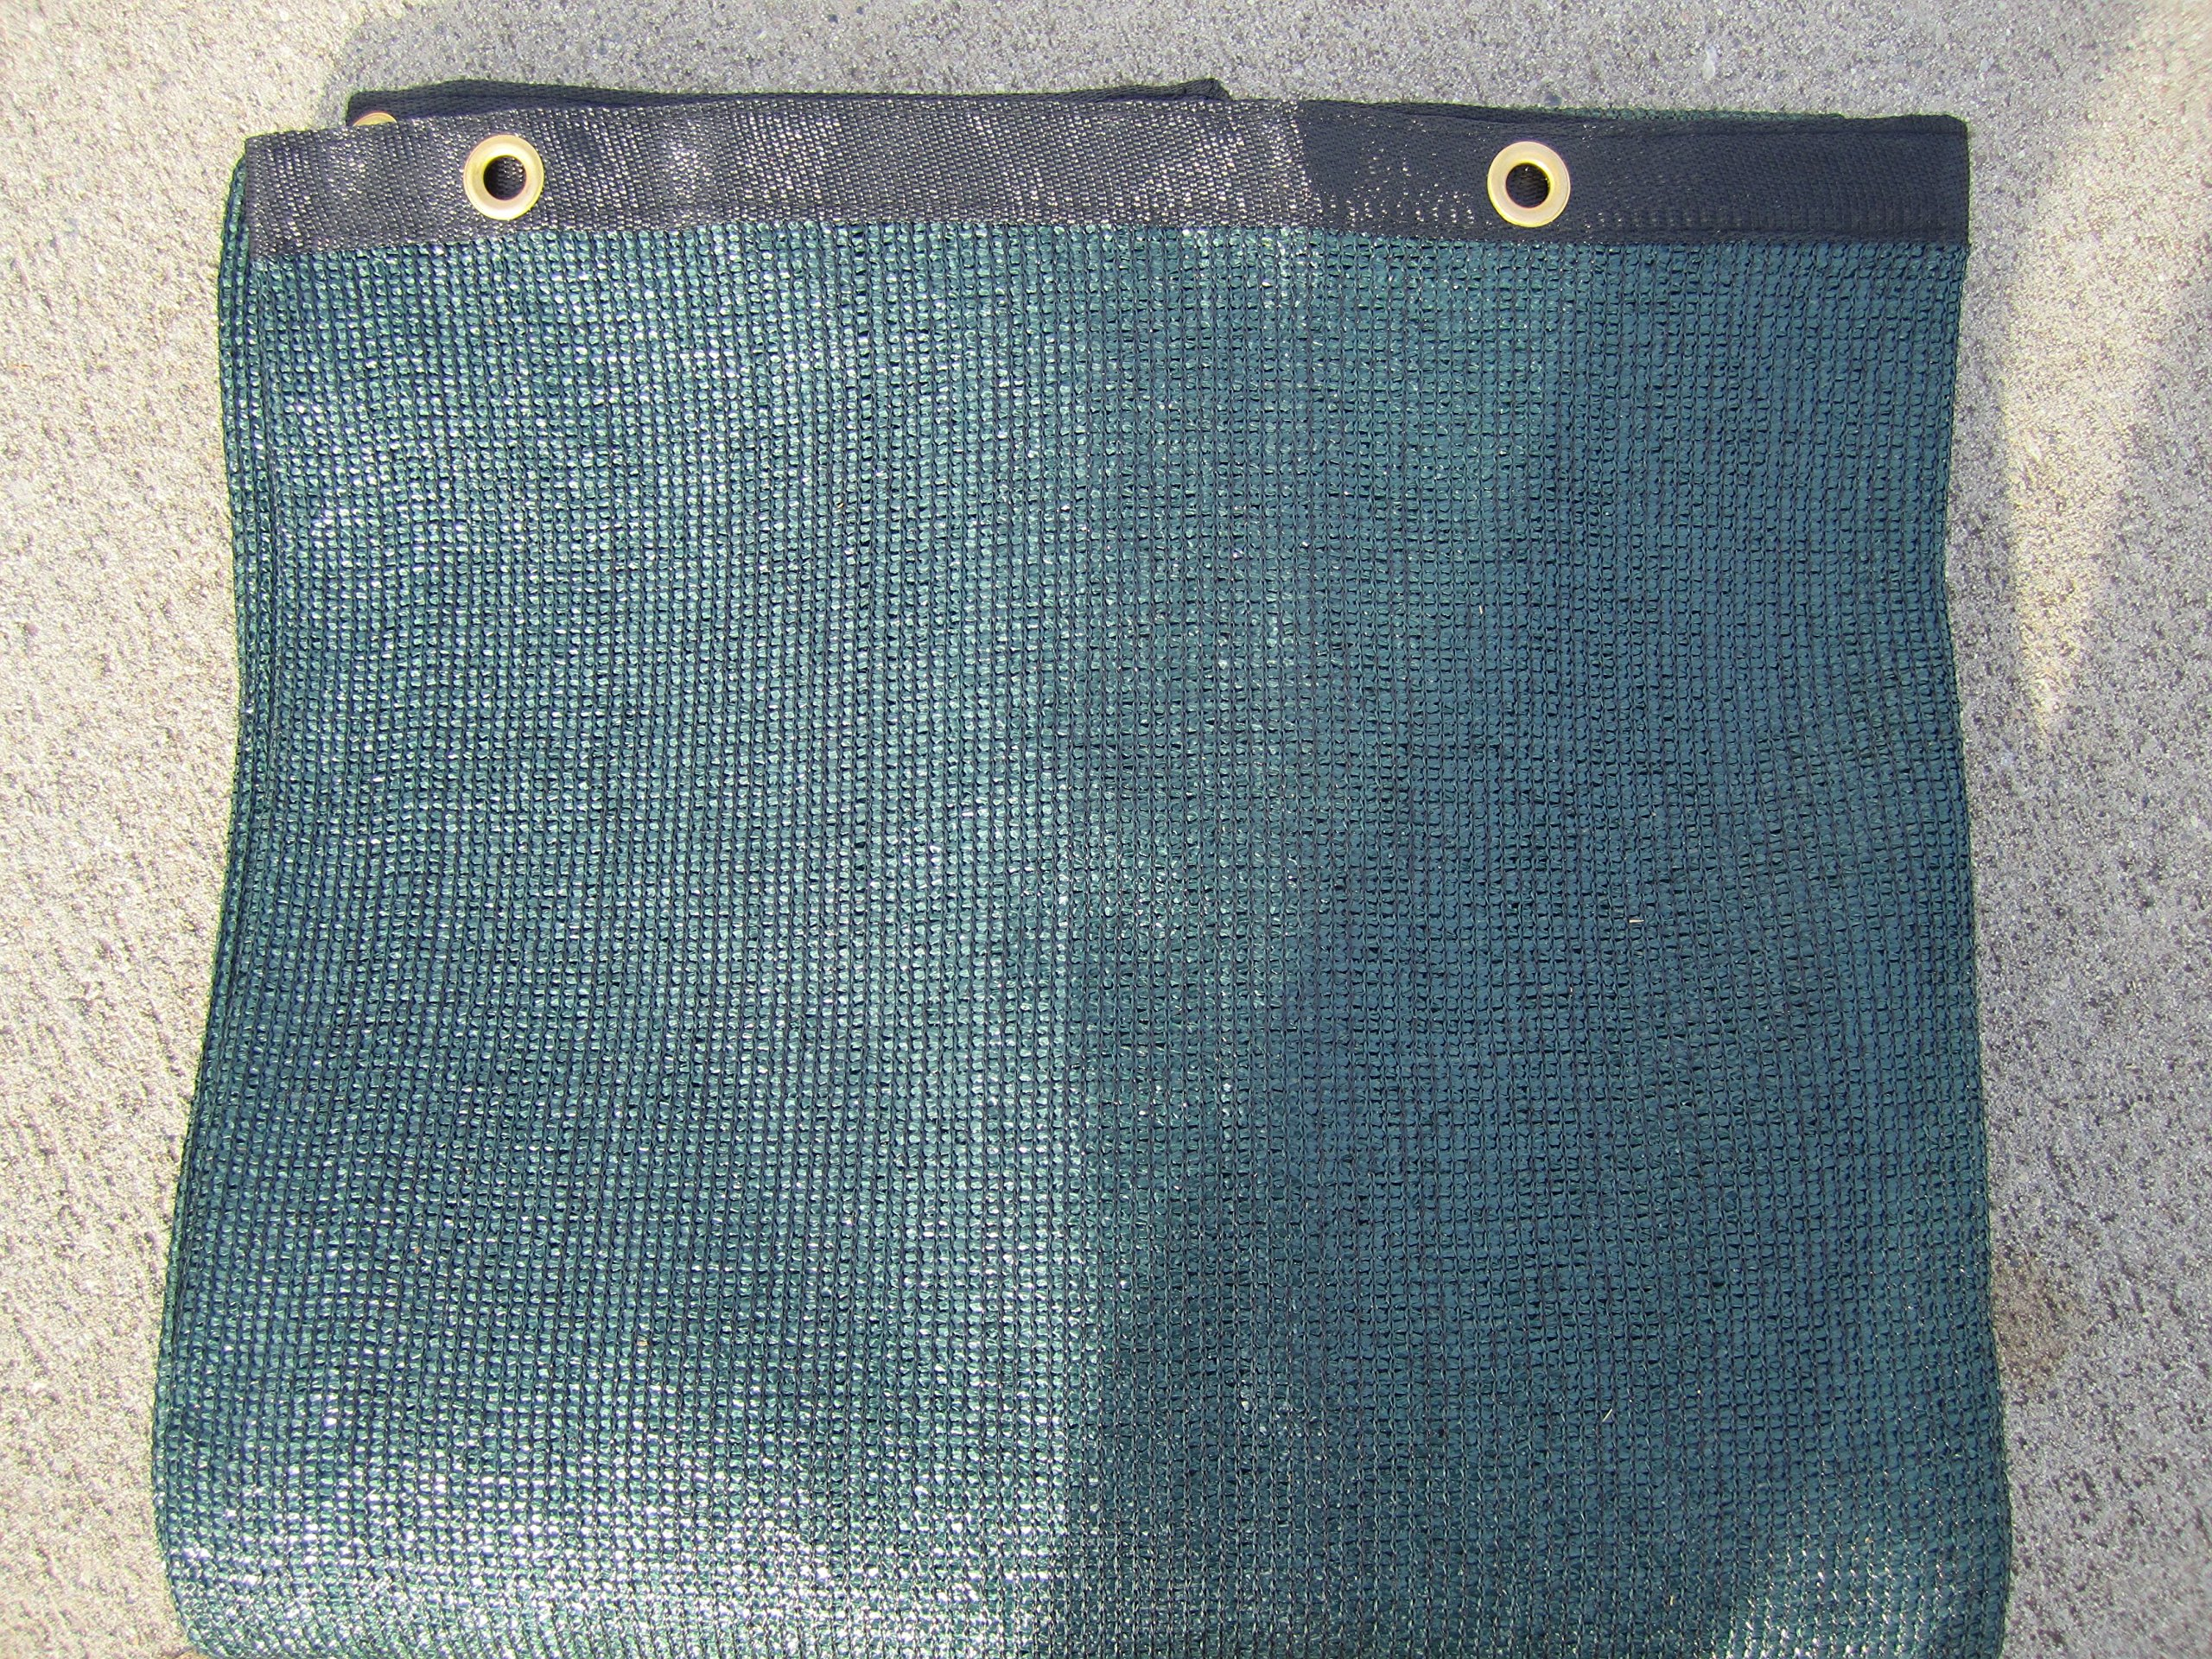 RC 10ft. X 10ft. Green Dog Kennel Shade Covers/Sunblock Tops (Top cover only)